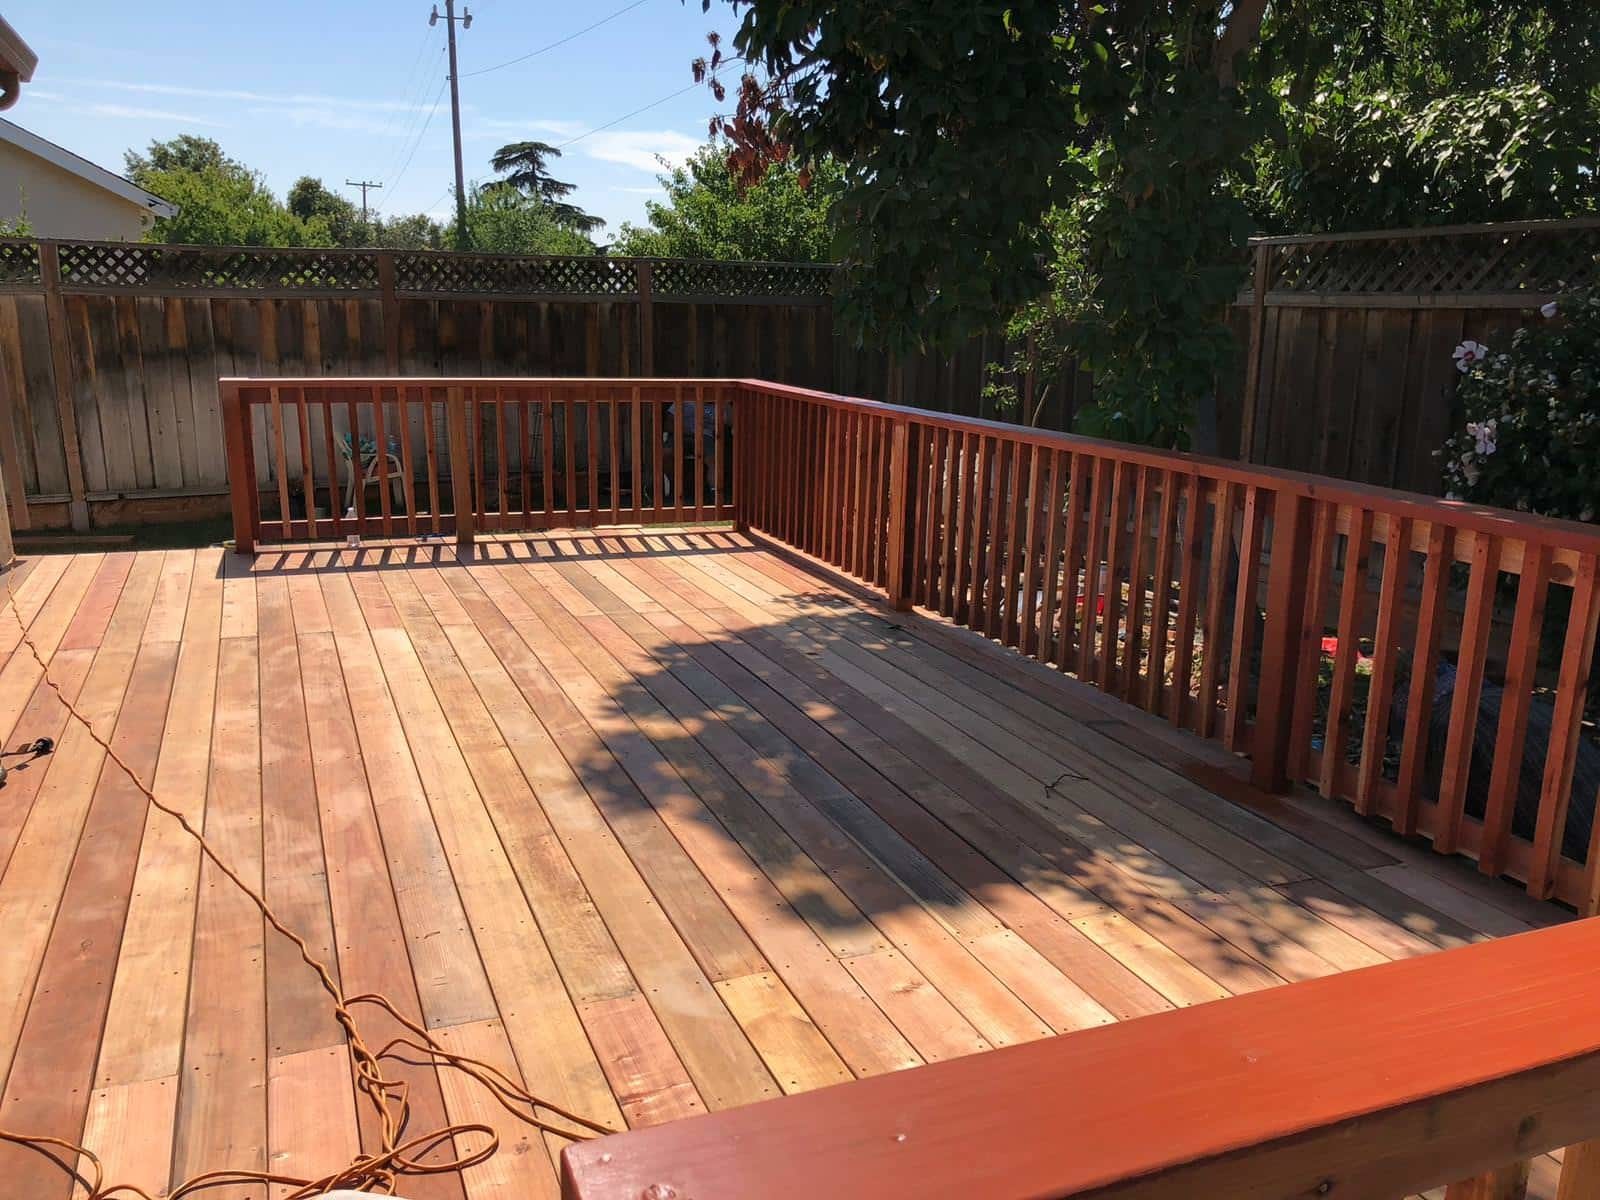 New deck design by Quartz Construction San Jose Company